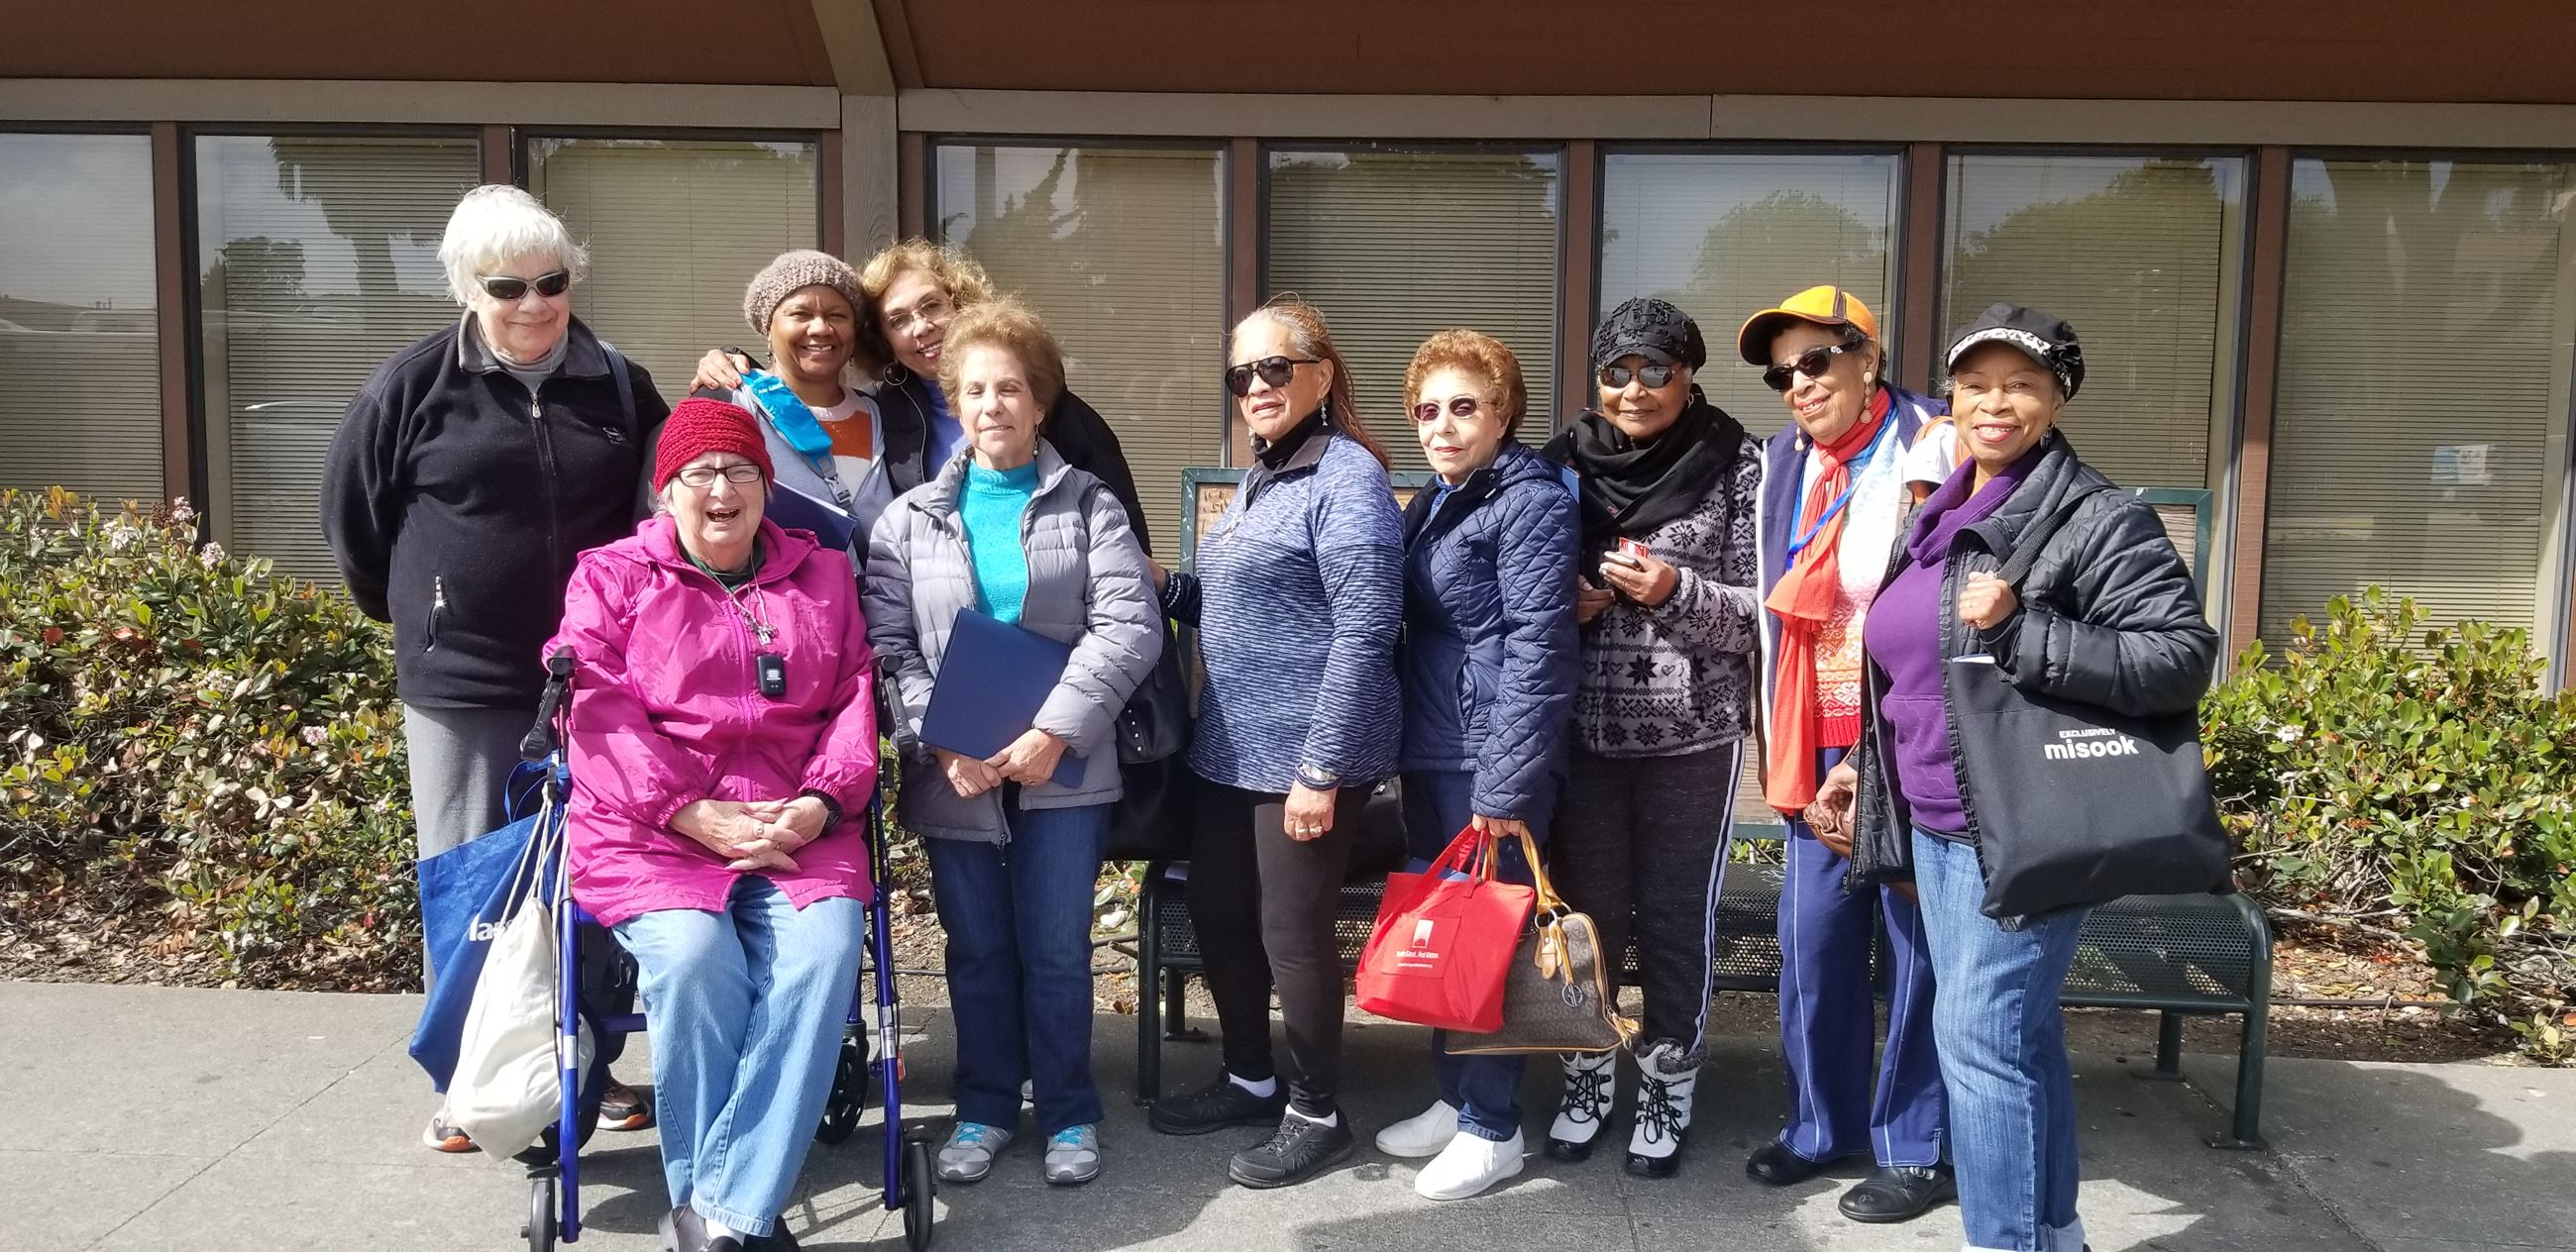 Senior Center Members on Social Trip